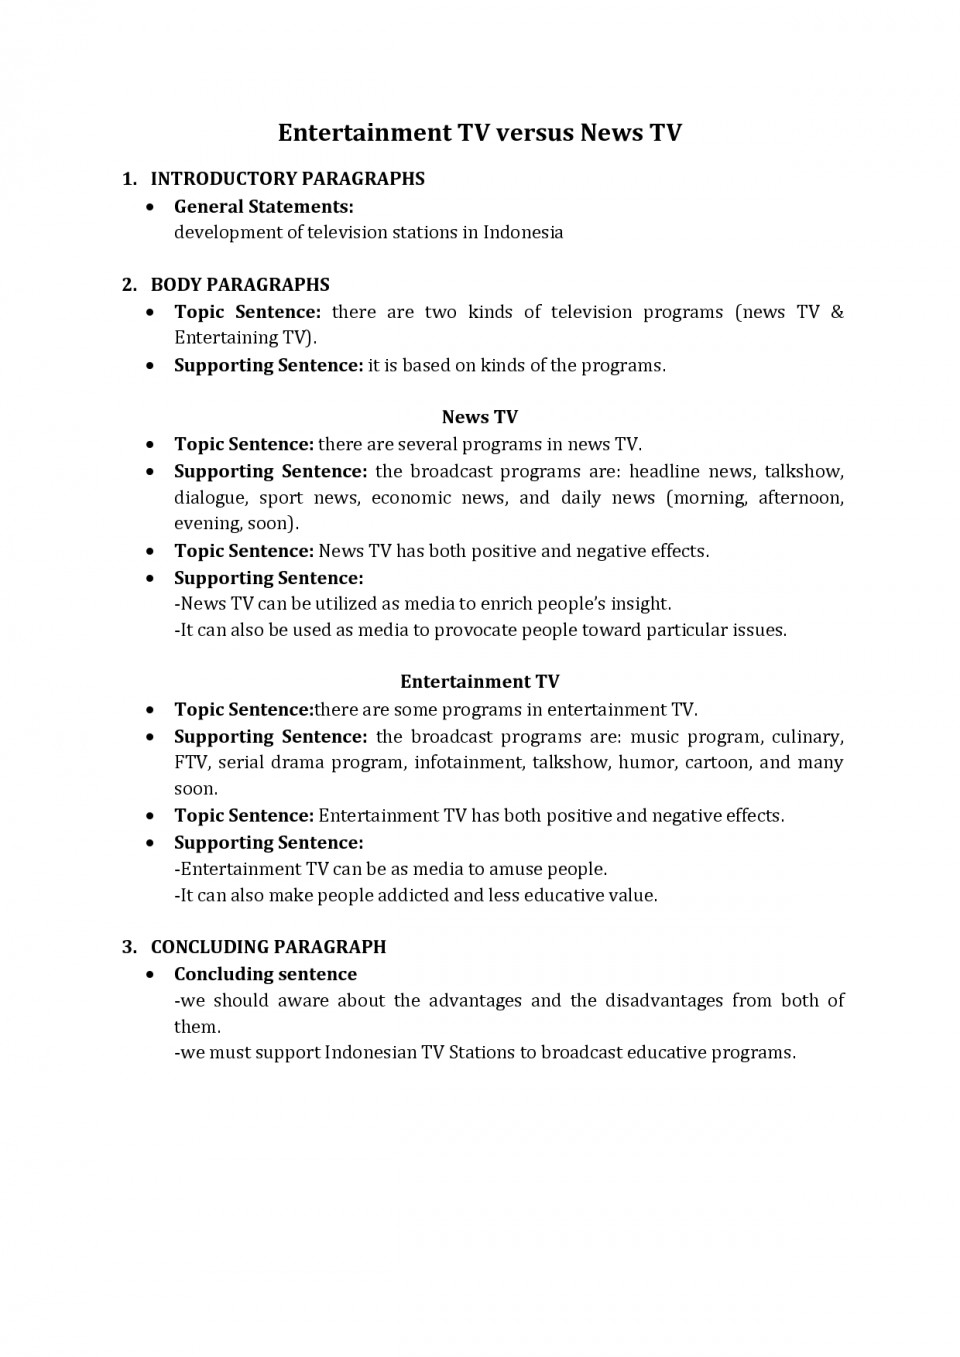 005 Fbunmxinib How To Write An Essay Outline Excellent For University 6th Grade 960